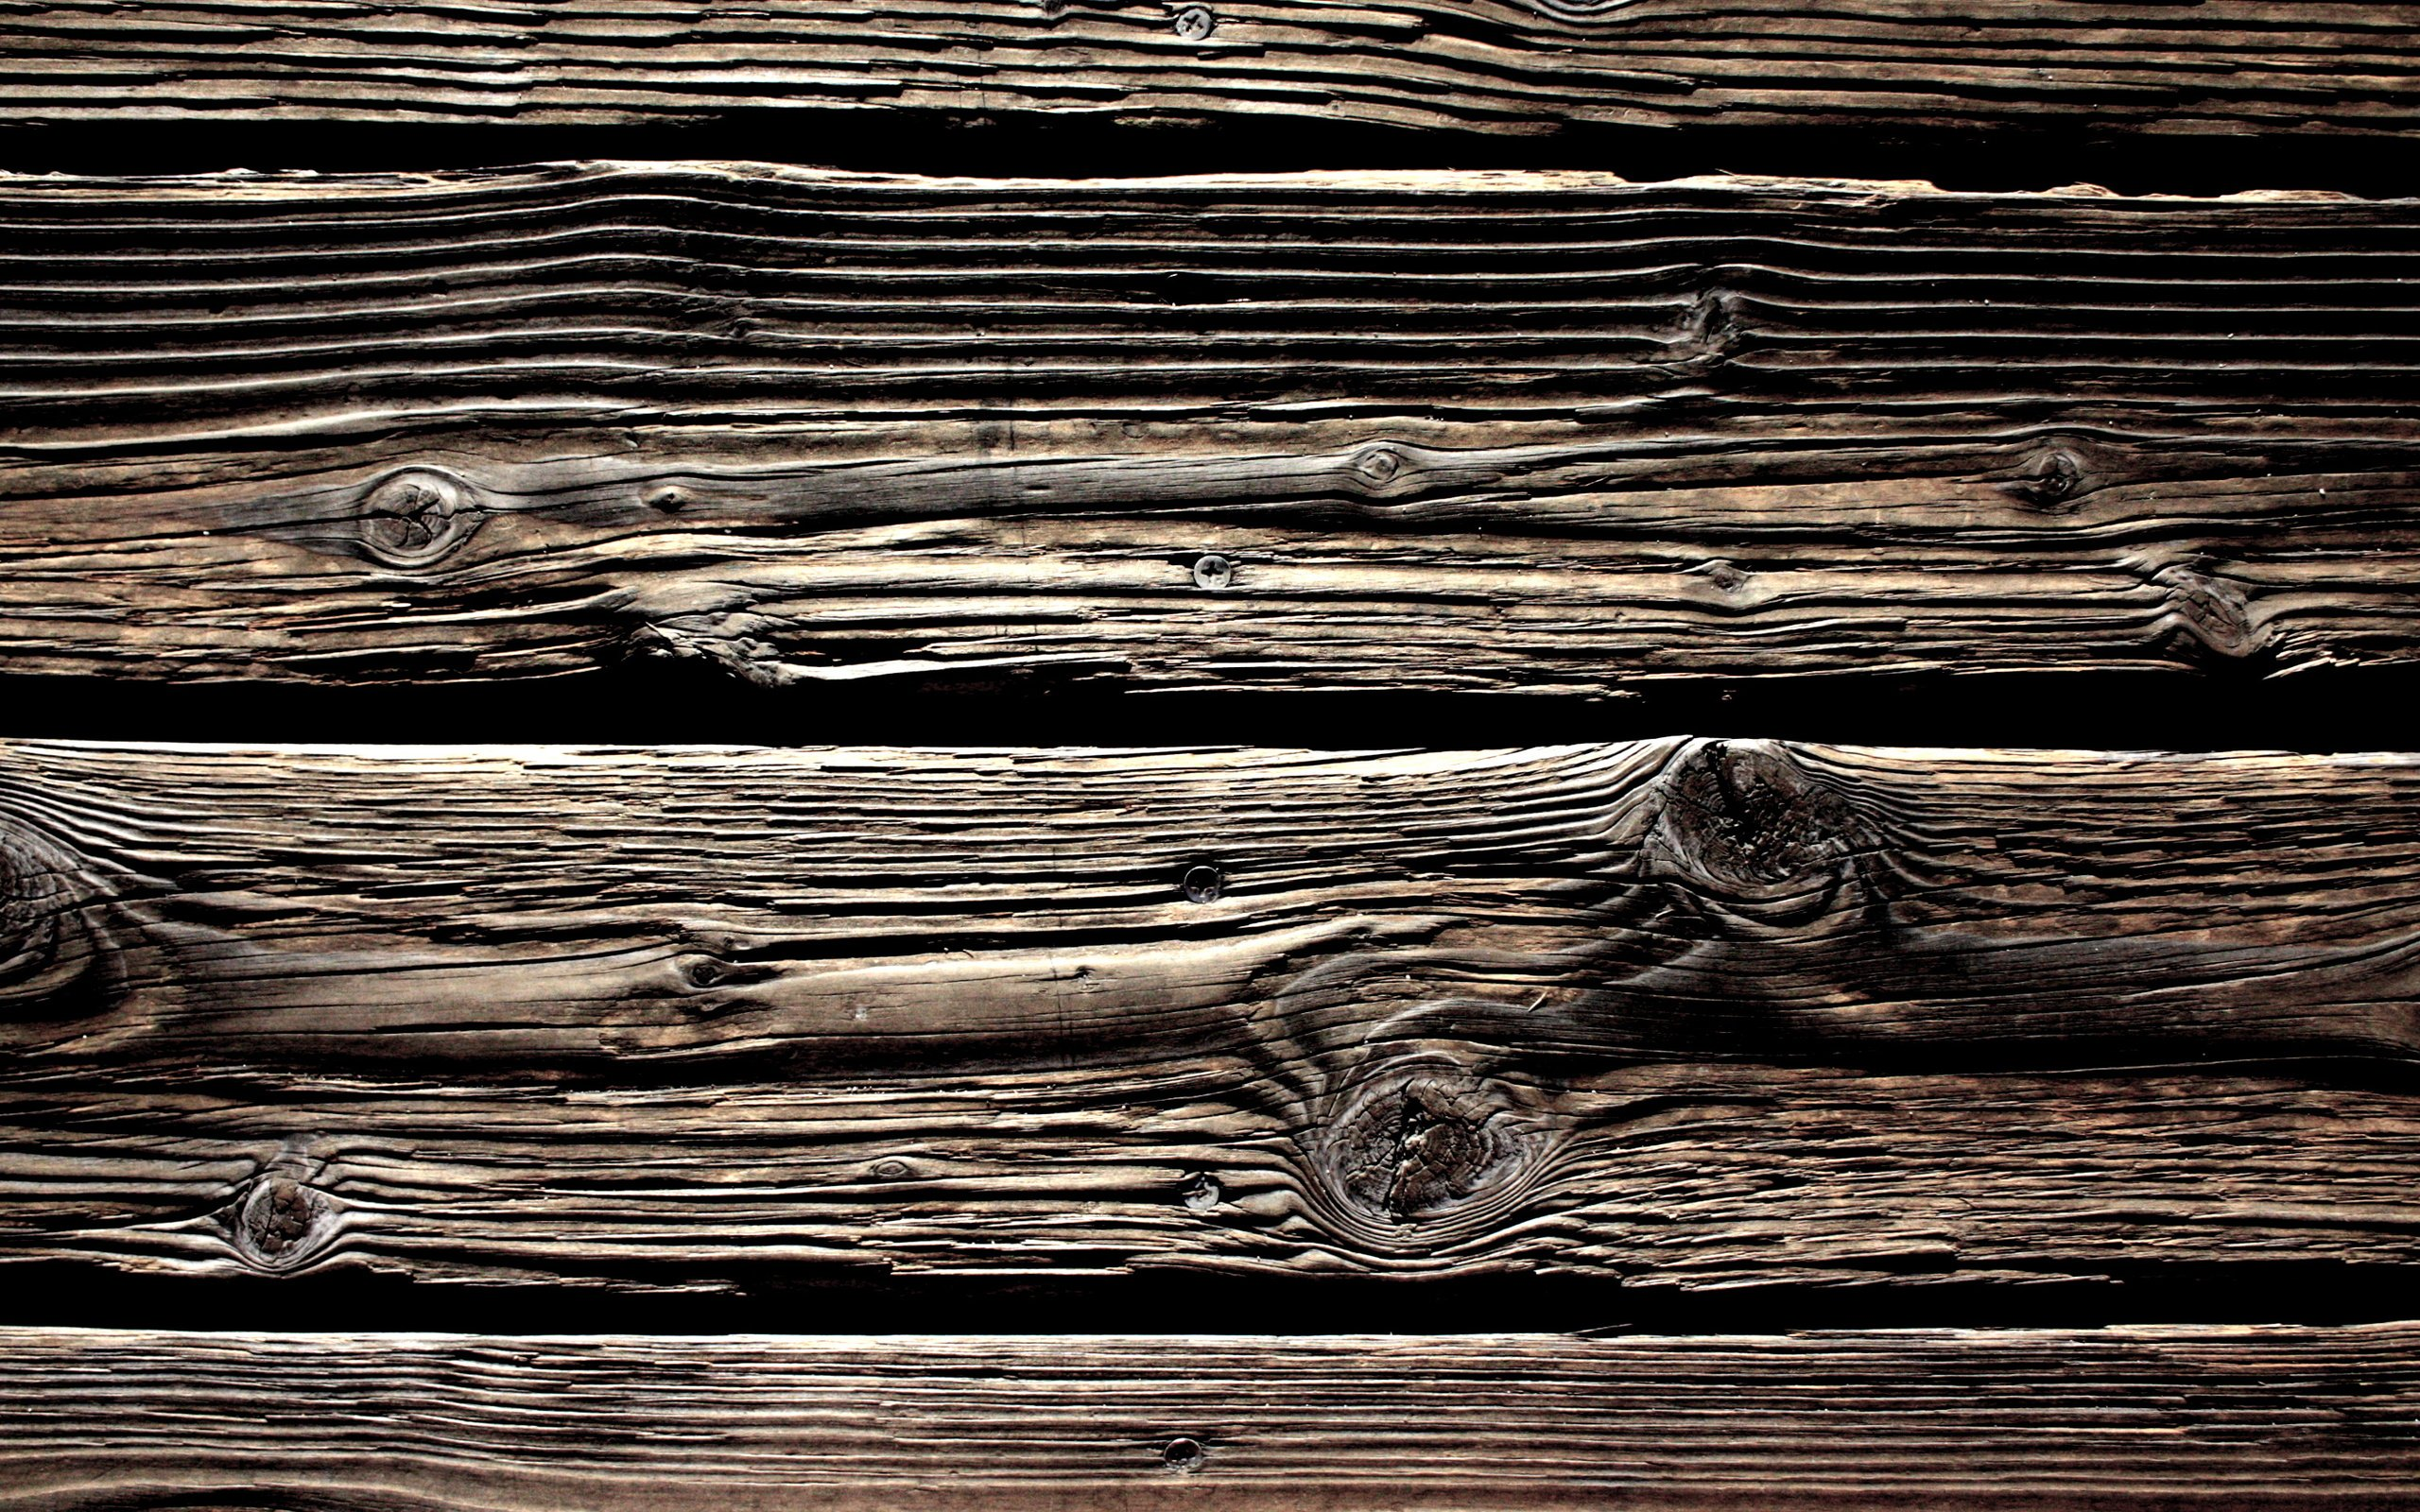 Vintage wood wallpaper vintage wood wallpaper for android backgrounds - Wood Computer Wallpapers Desktop Backgrounds 2560x1600 Id 378722